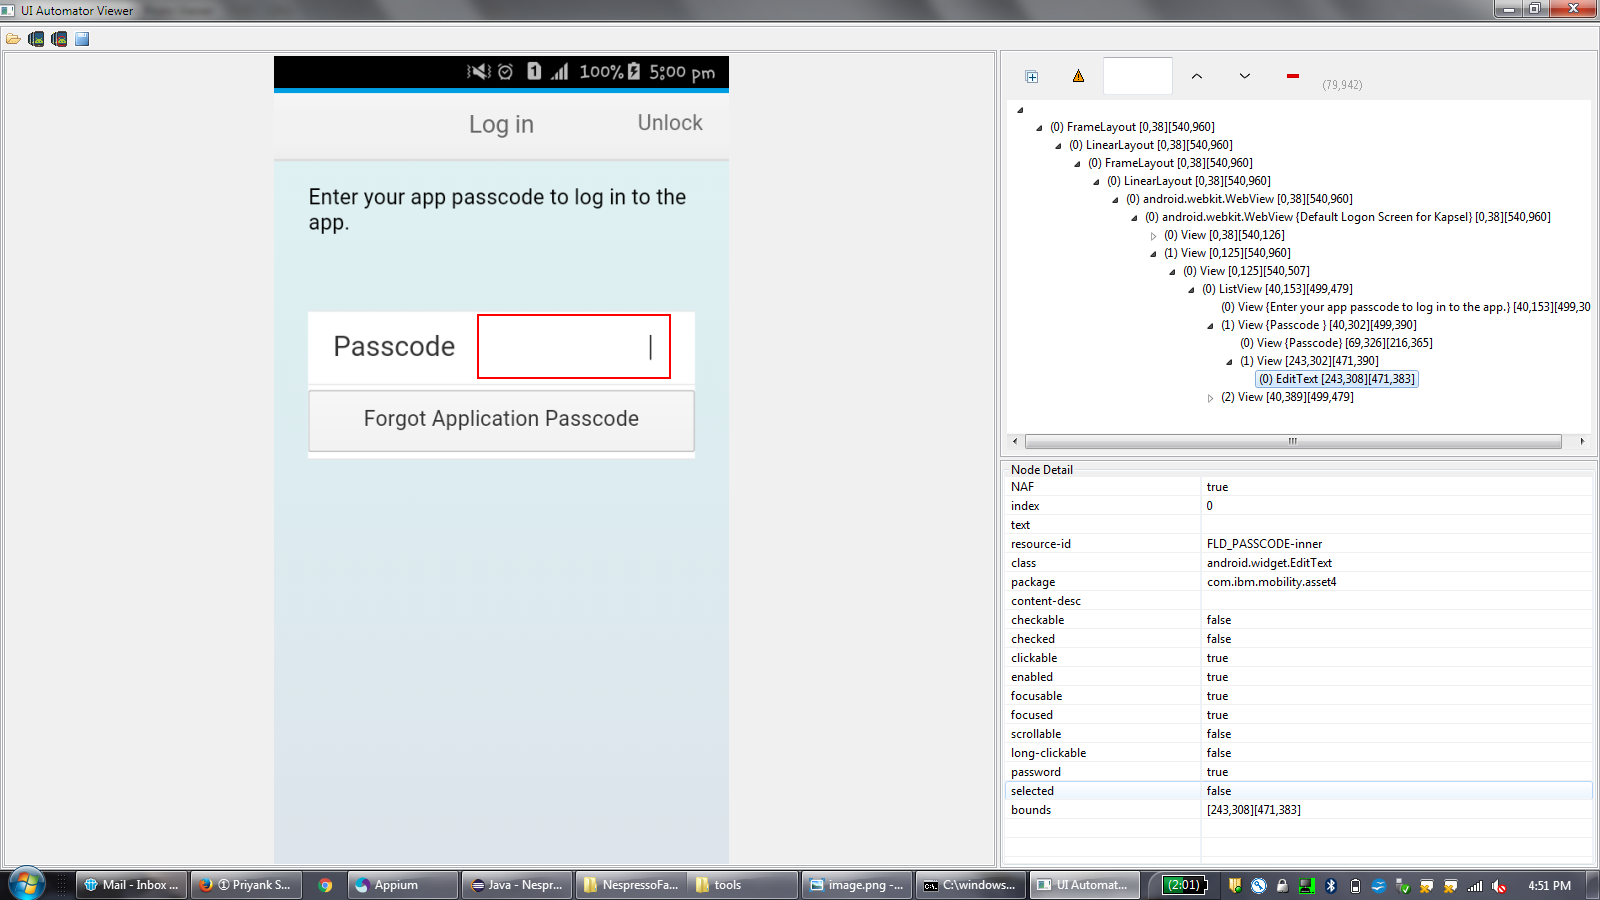 sendKey not working for android view View class - Support - Appium